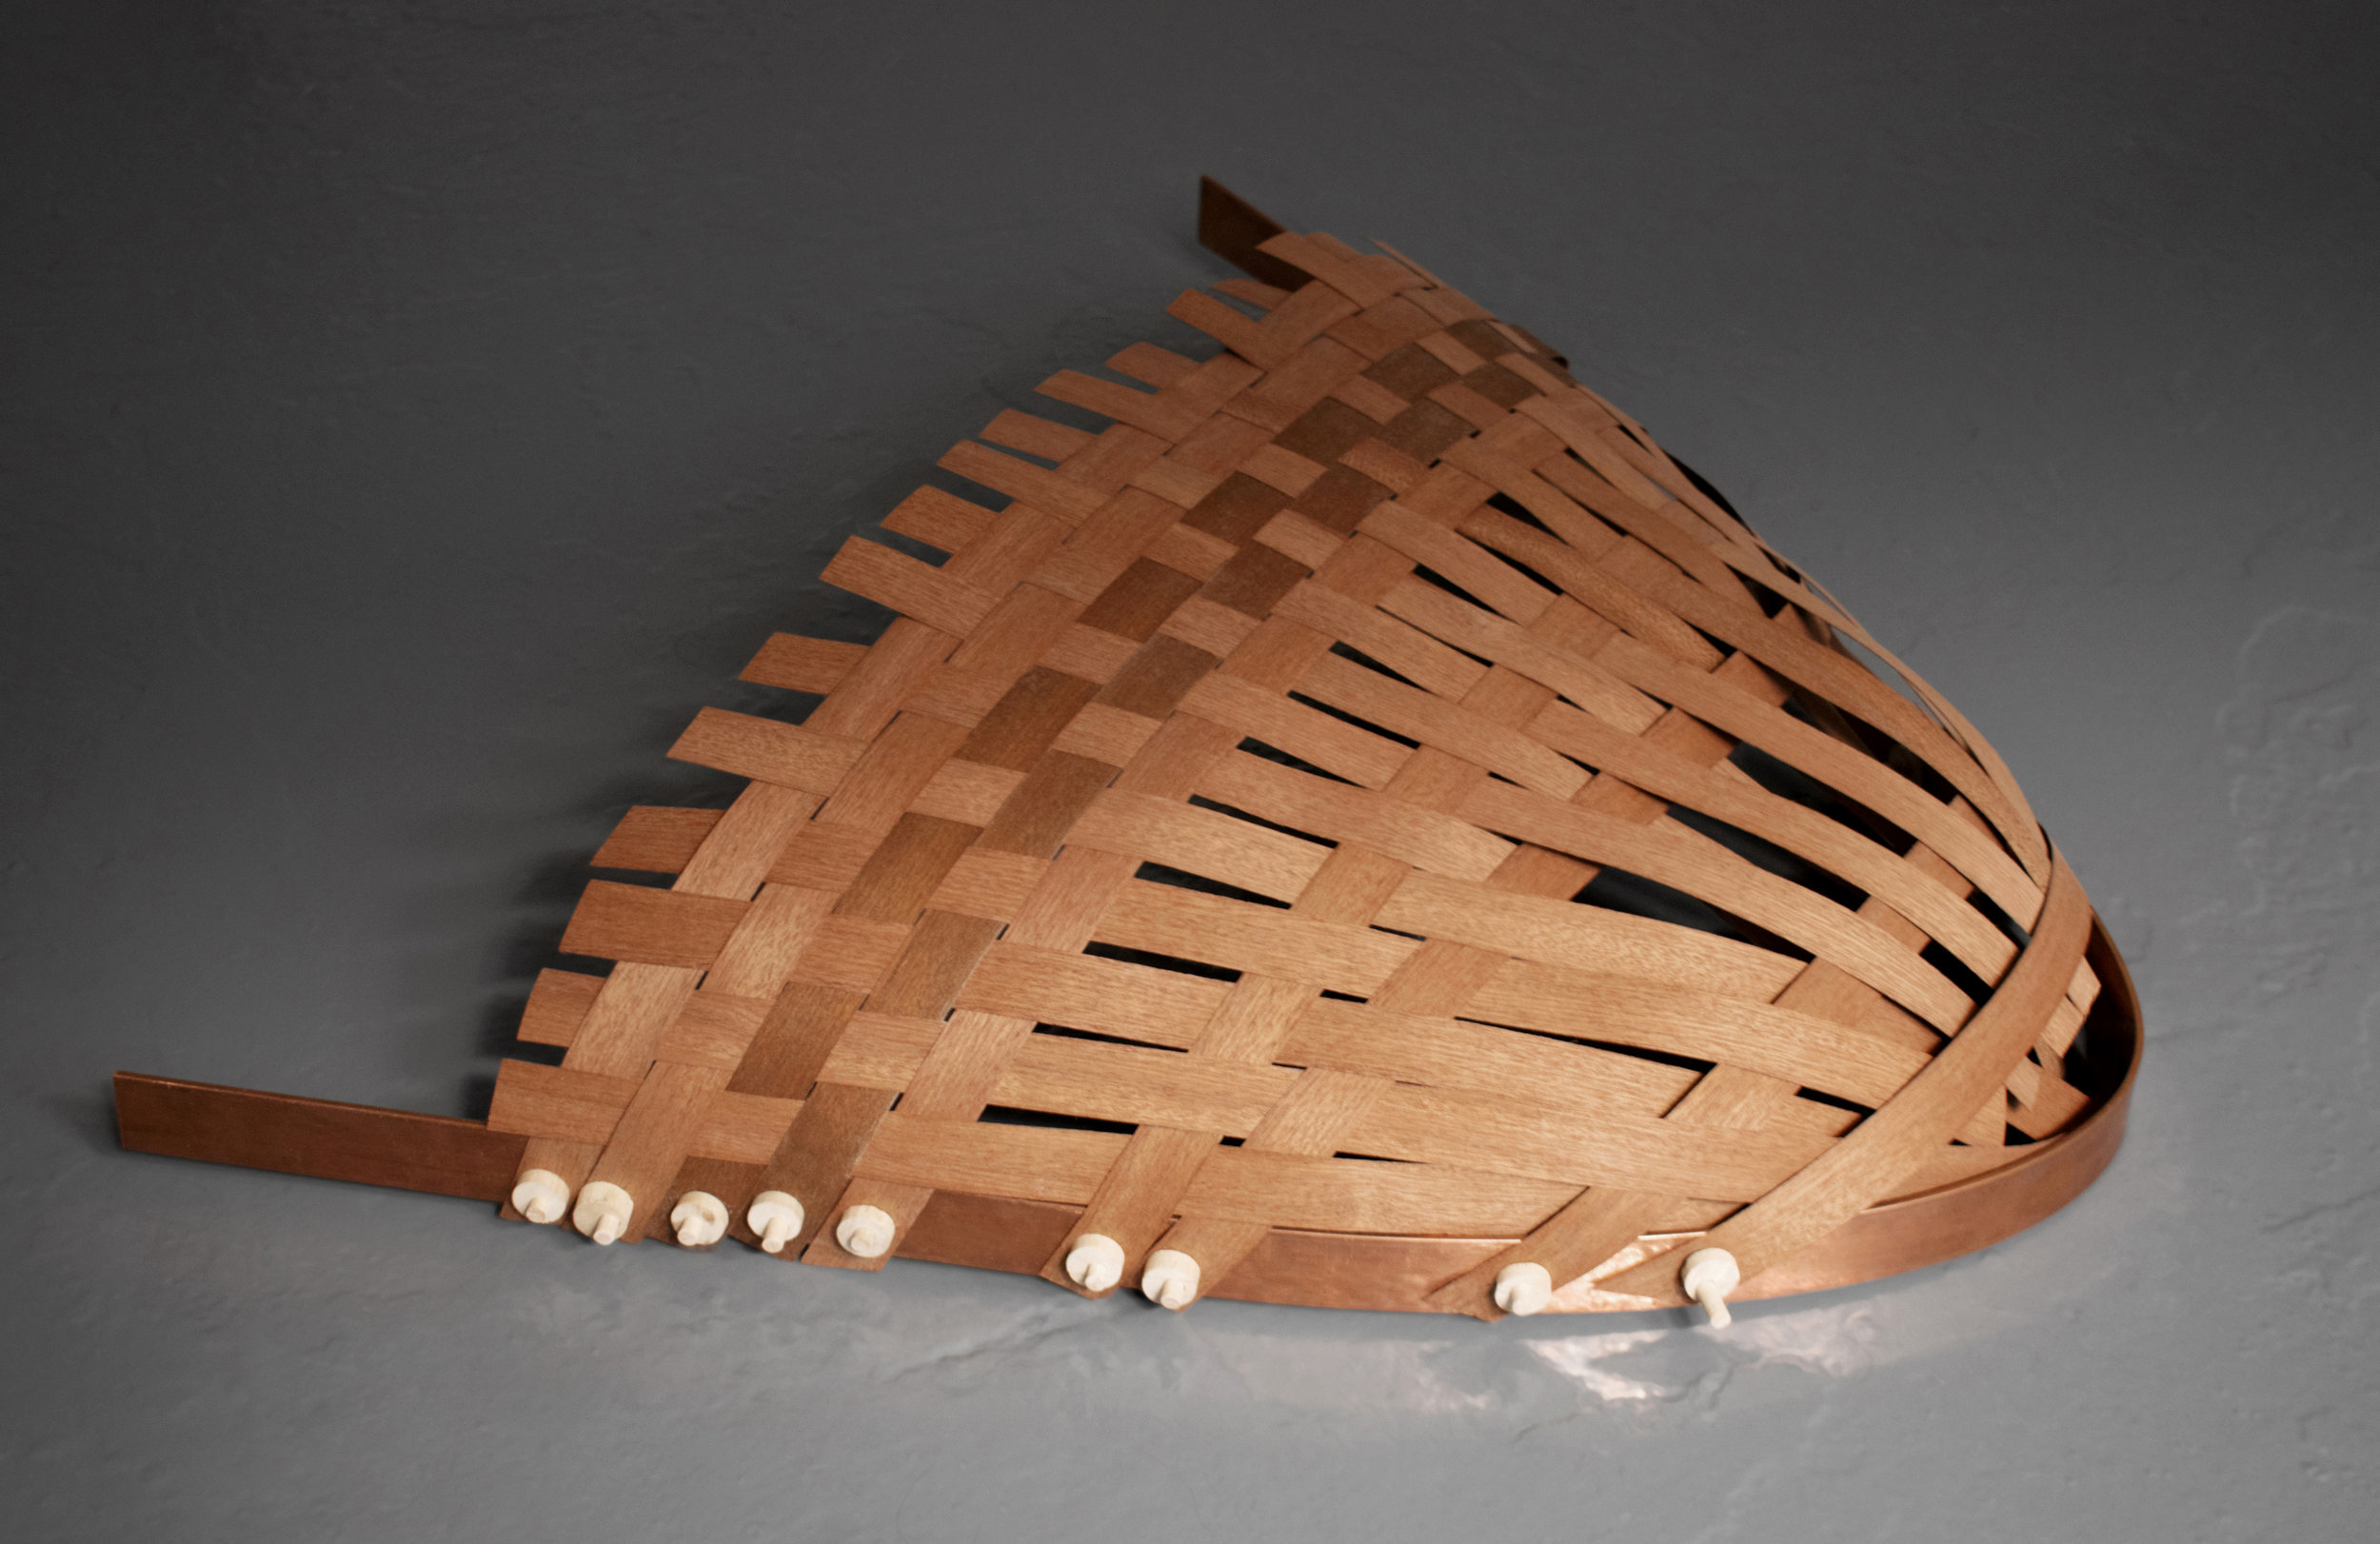 Bring me to The River and I will Follow  Weaved Sapele veneer on bent copper and wooden clamps. 63 x 56 x 10 cm. 2019